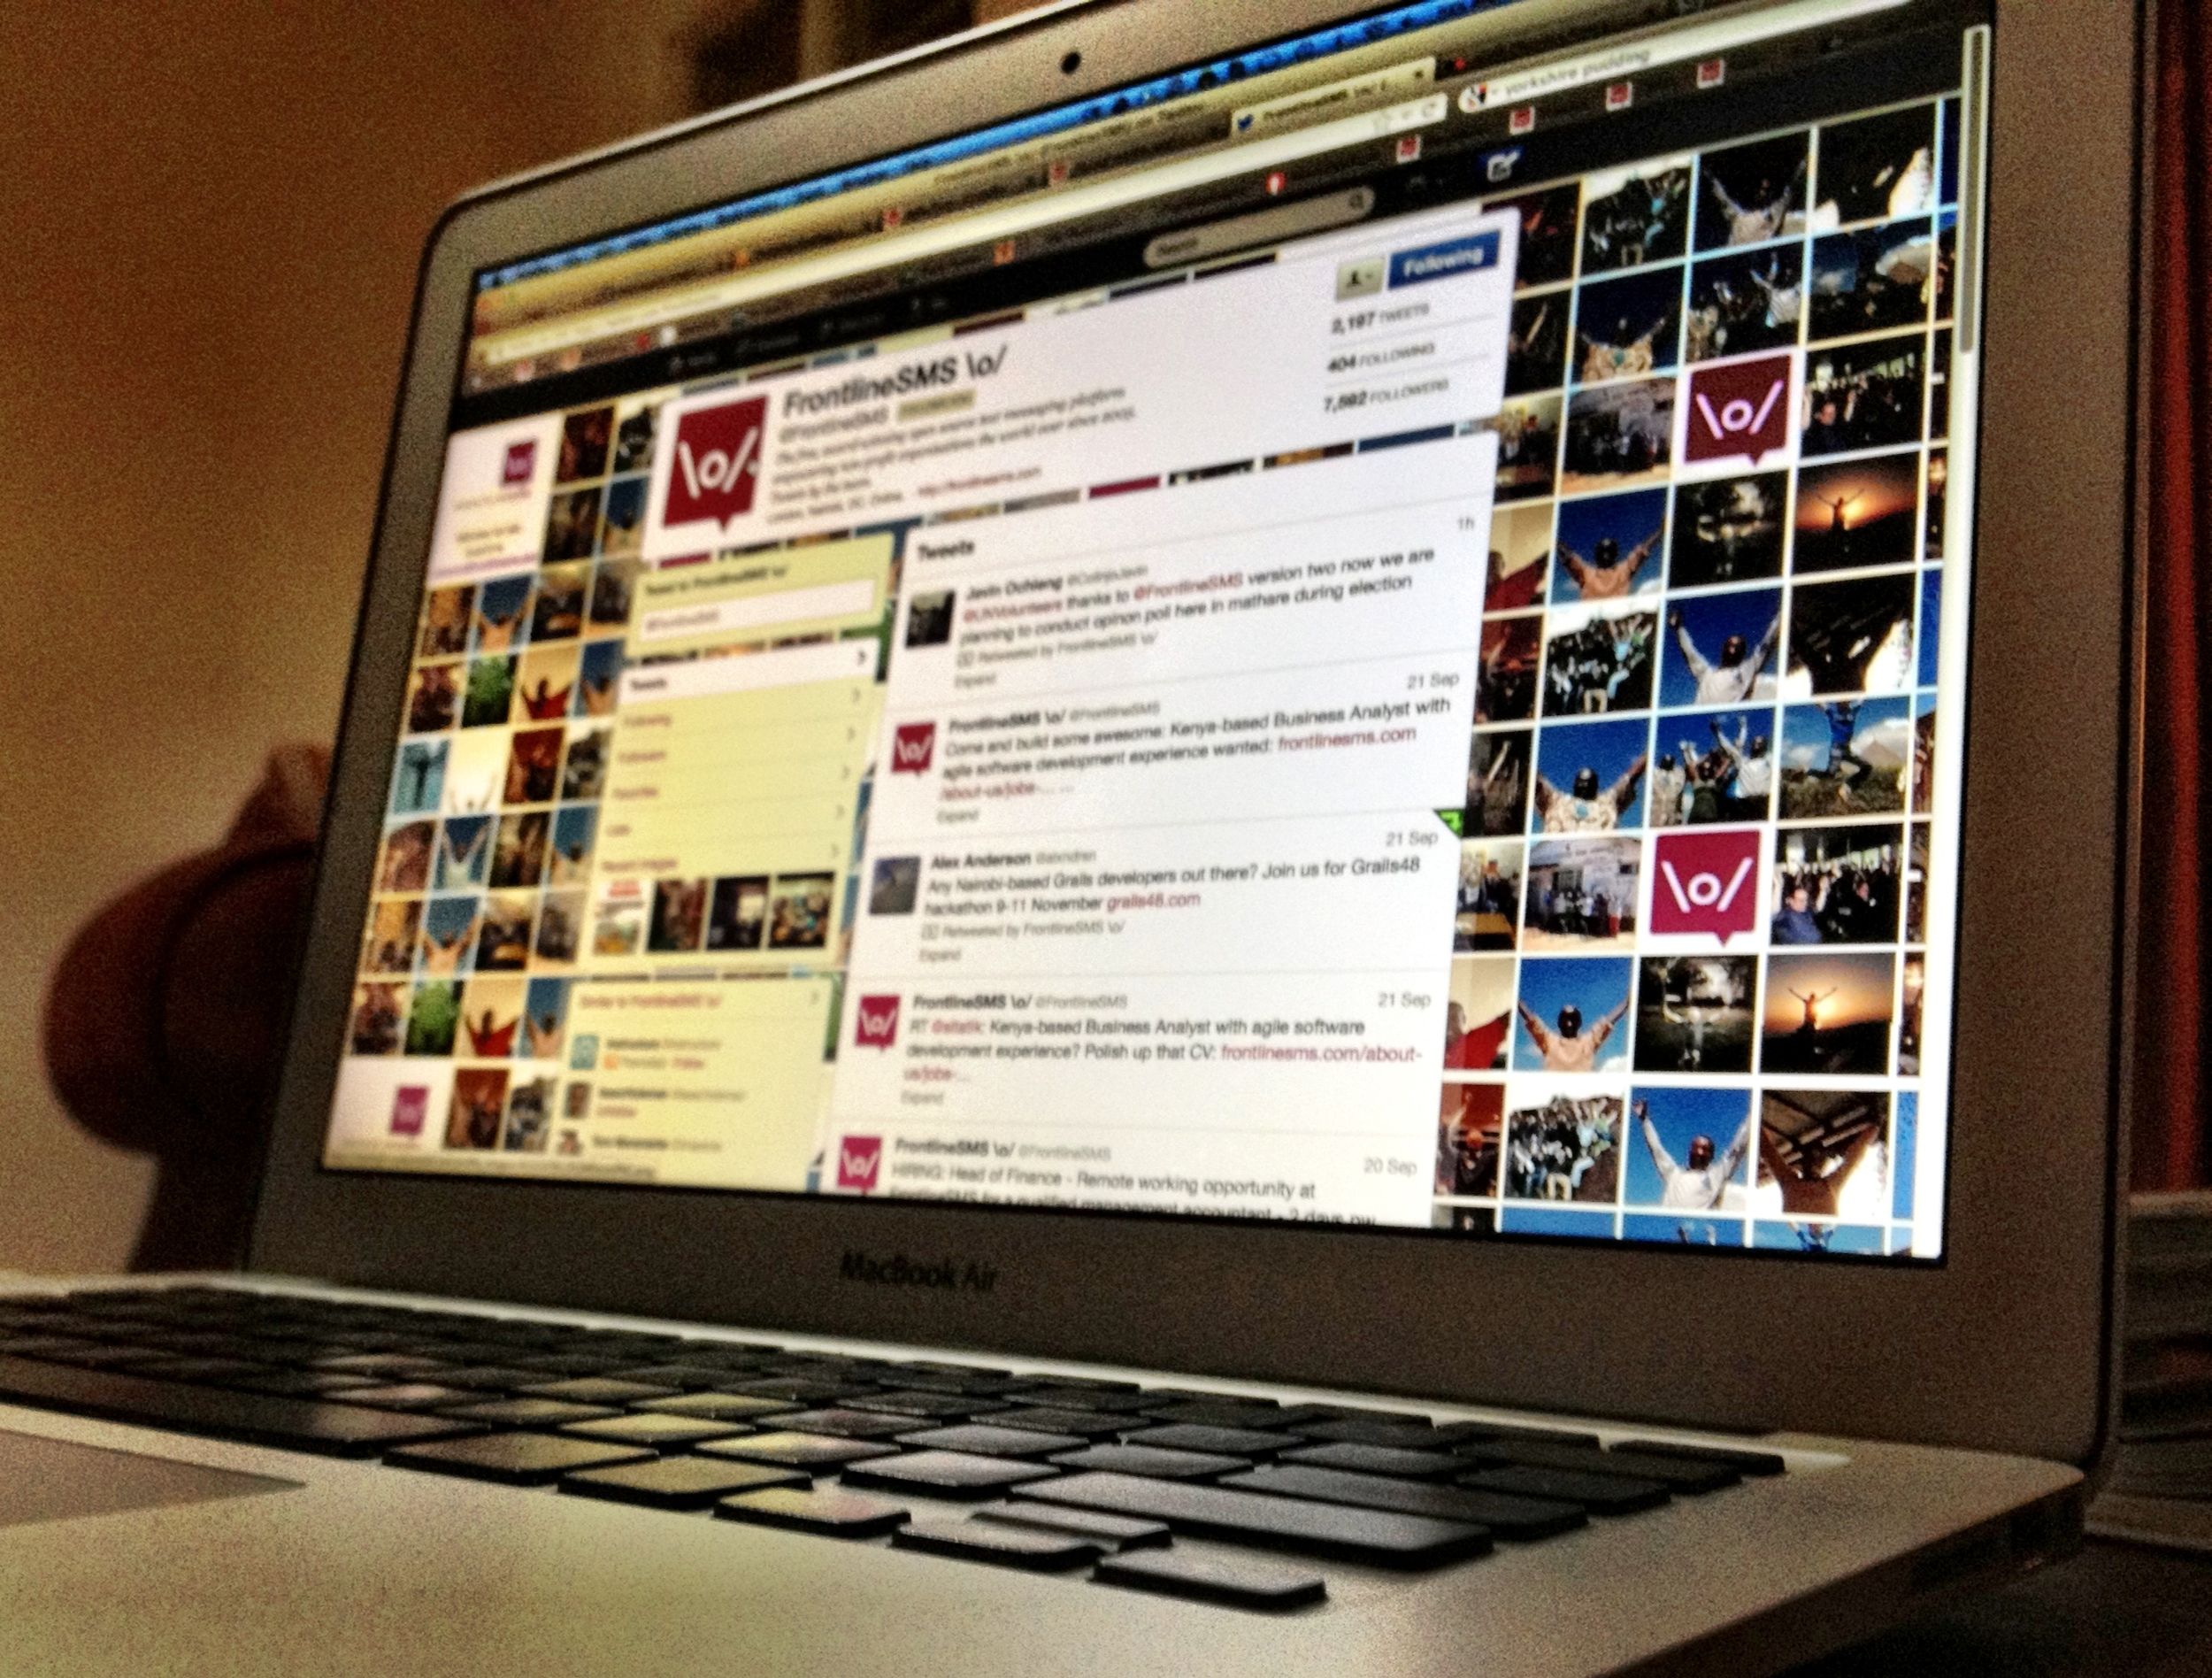 Photo of MacBook Air displaying the FrontlineSMS Twitter page